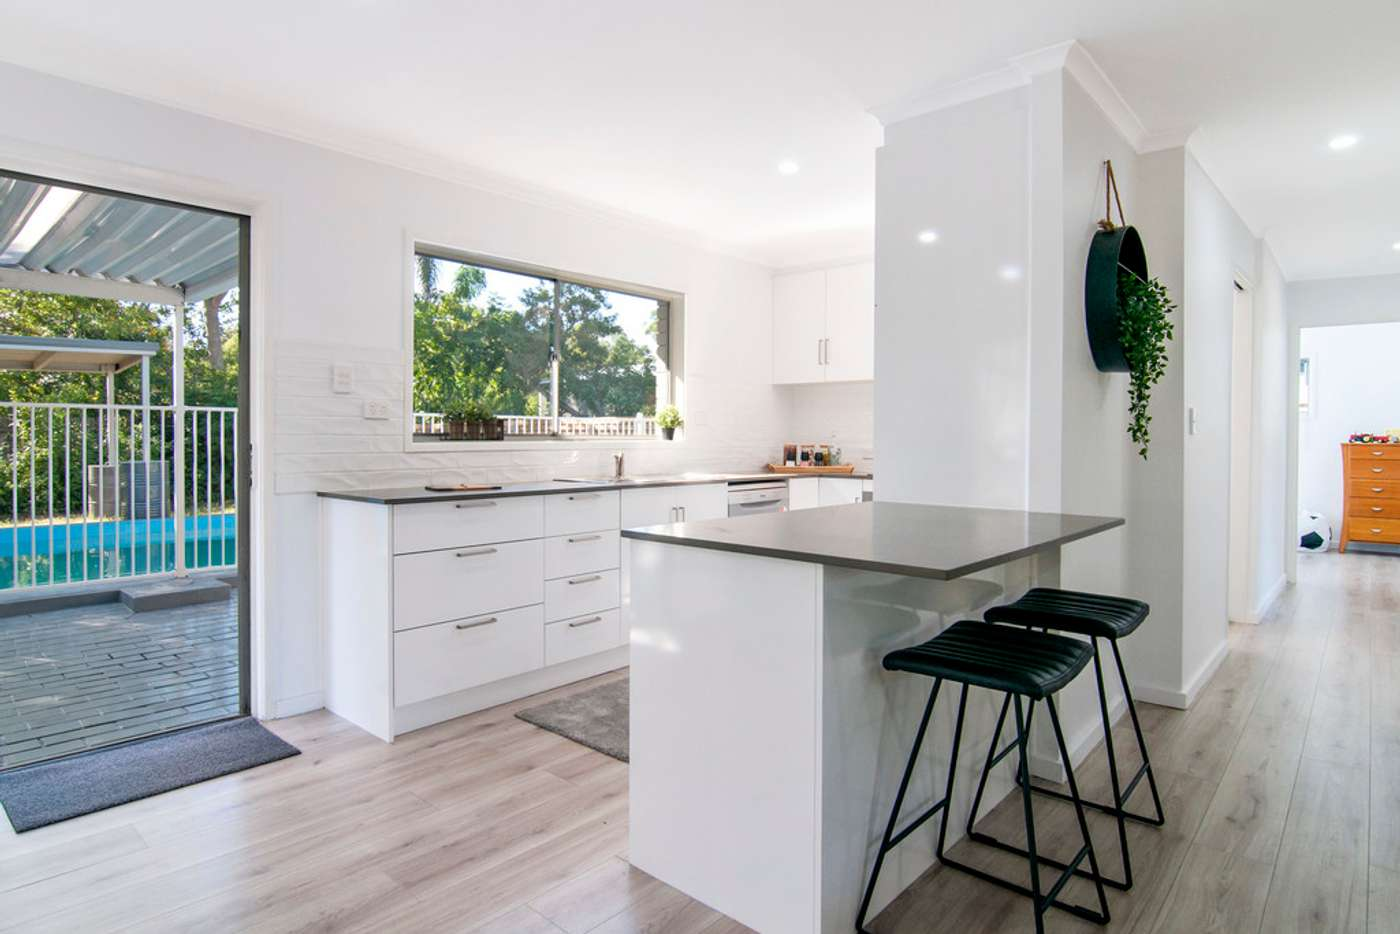 Main view of Homely house listing, 23 Wenlock Crescent, Springwood QLD 4127